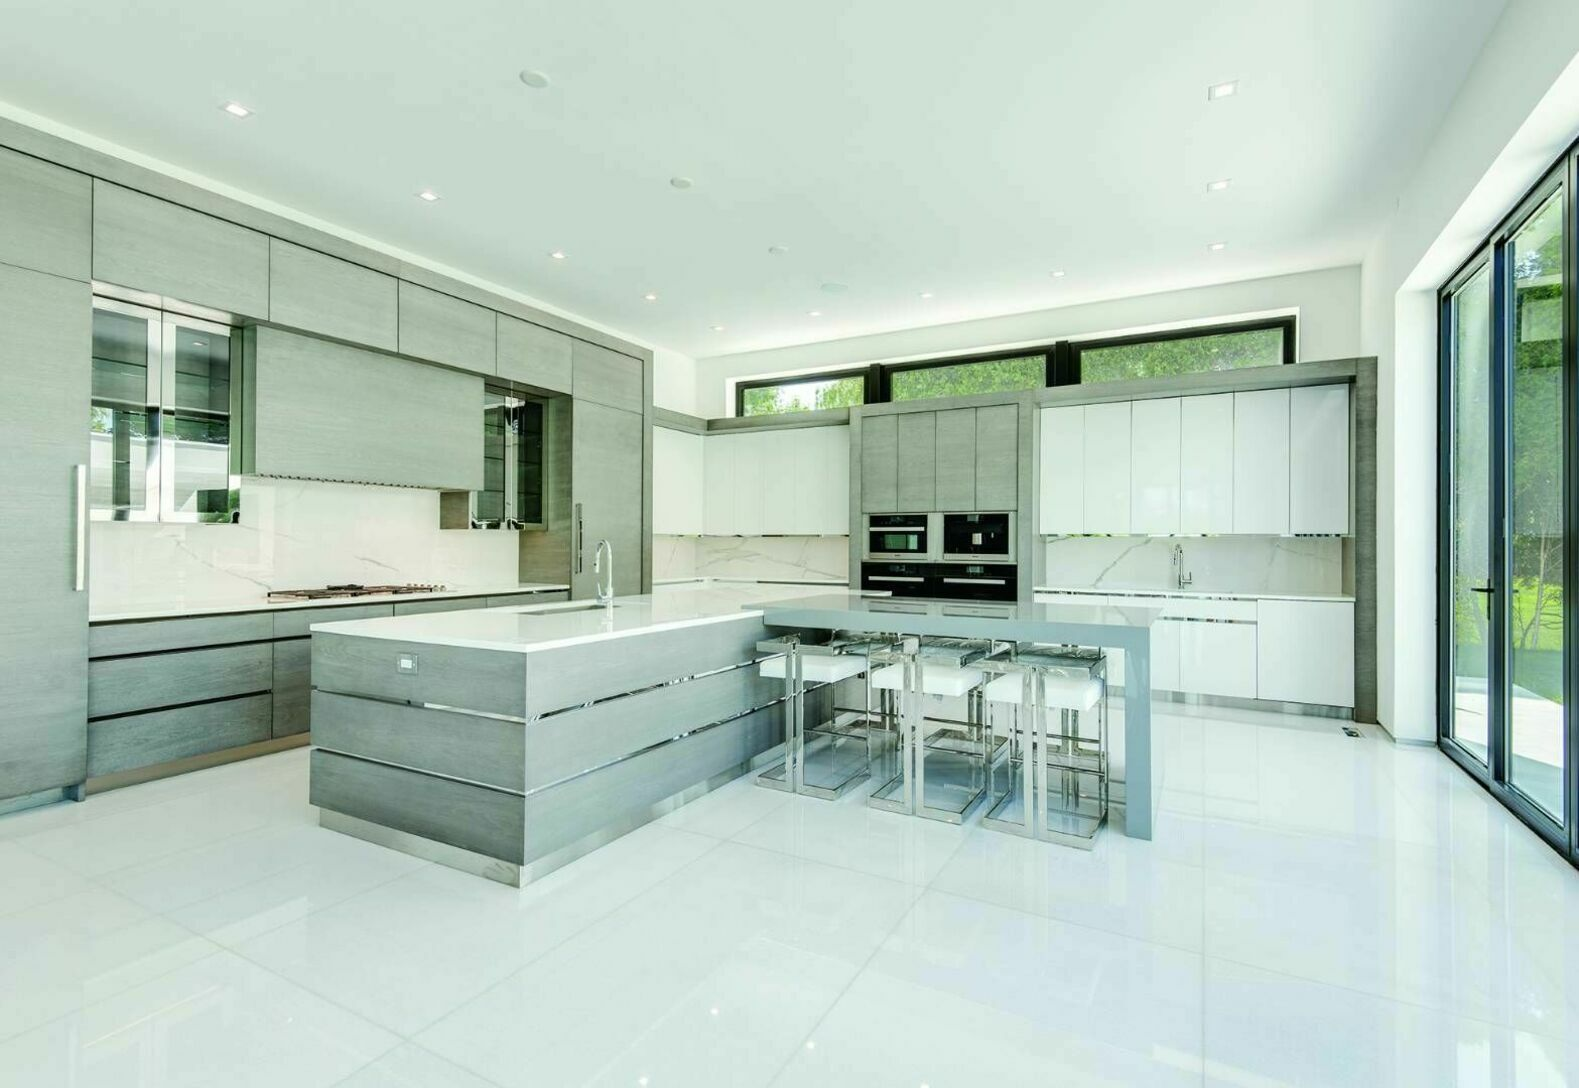 88 Rose Way master kitchen render